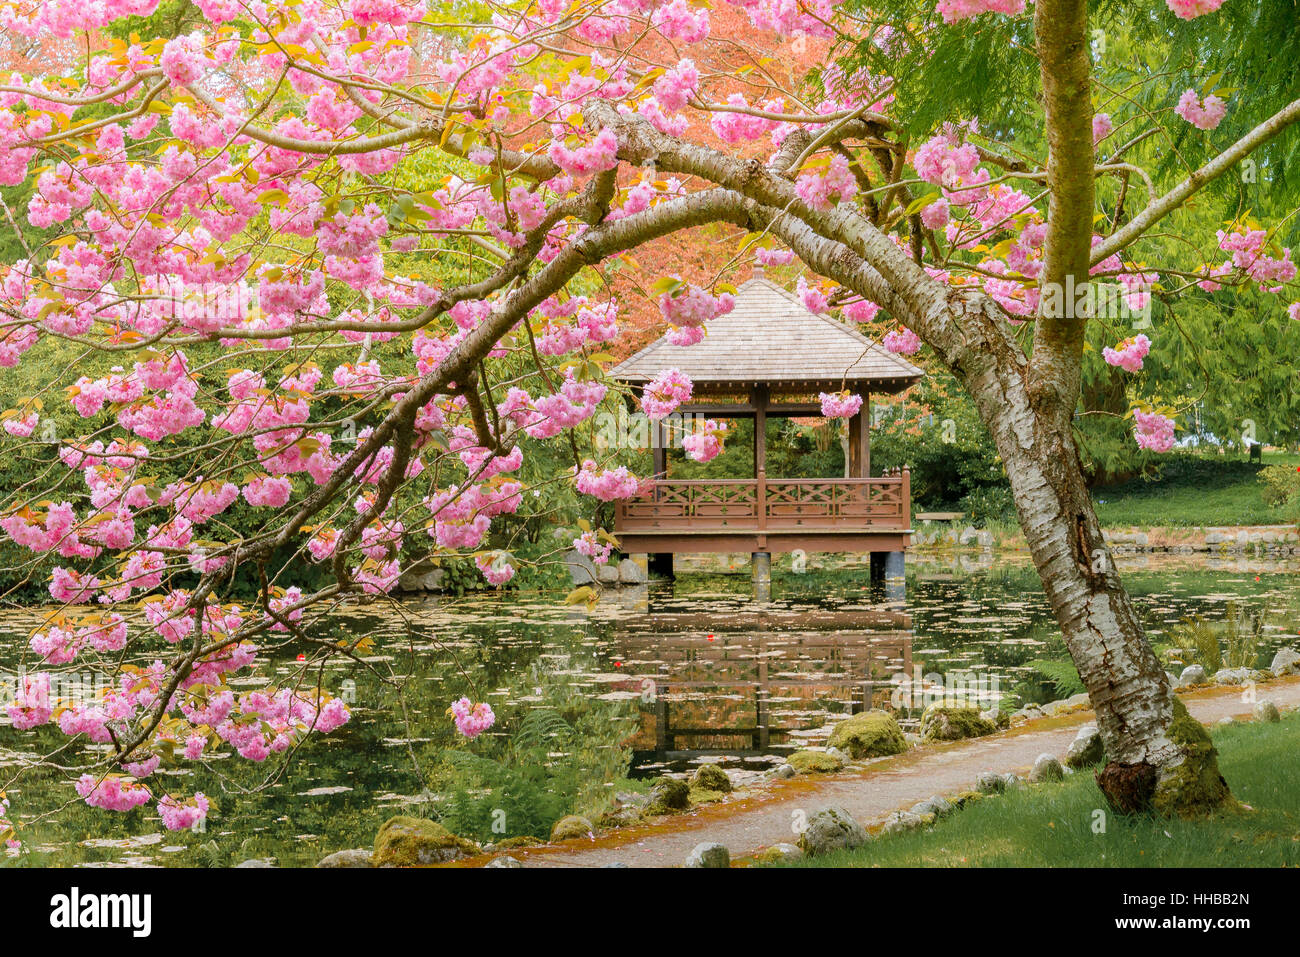 Japanese Garden Cherry Blossom Stock Photos & Japanese Garden Cherry ...